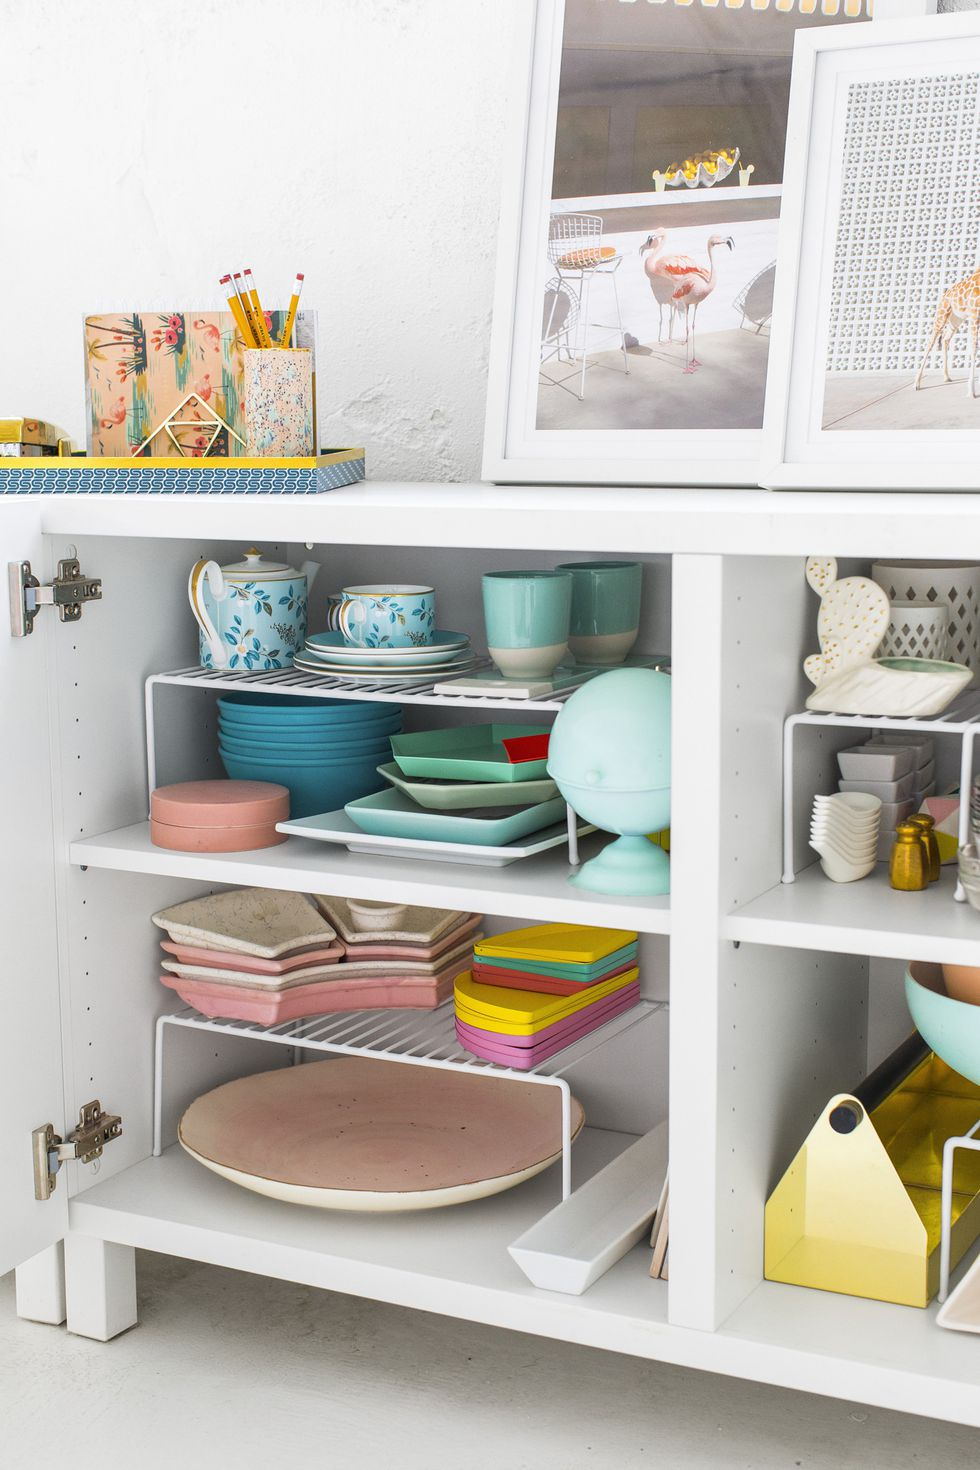 10 Use Wire Shelf Risers to Expand the Storage Space via Simphome